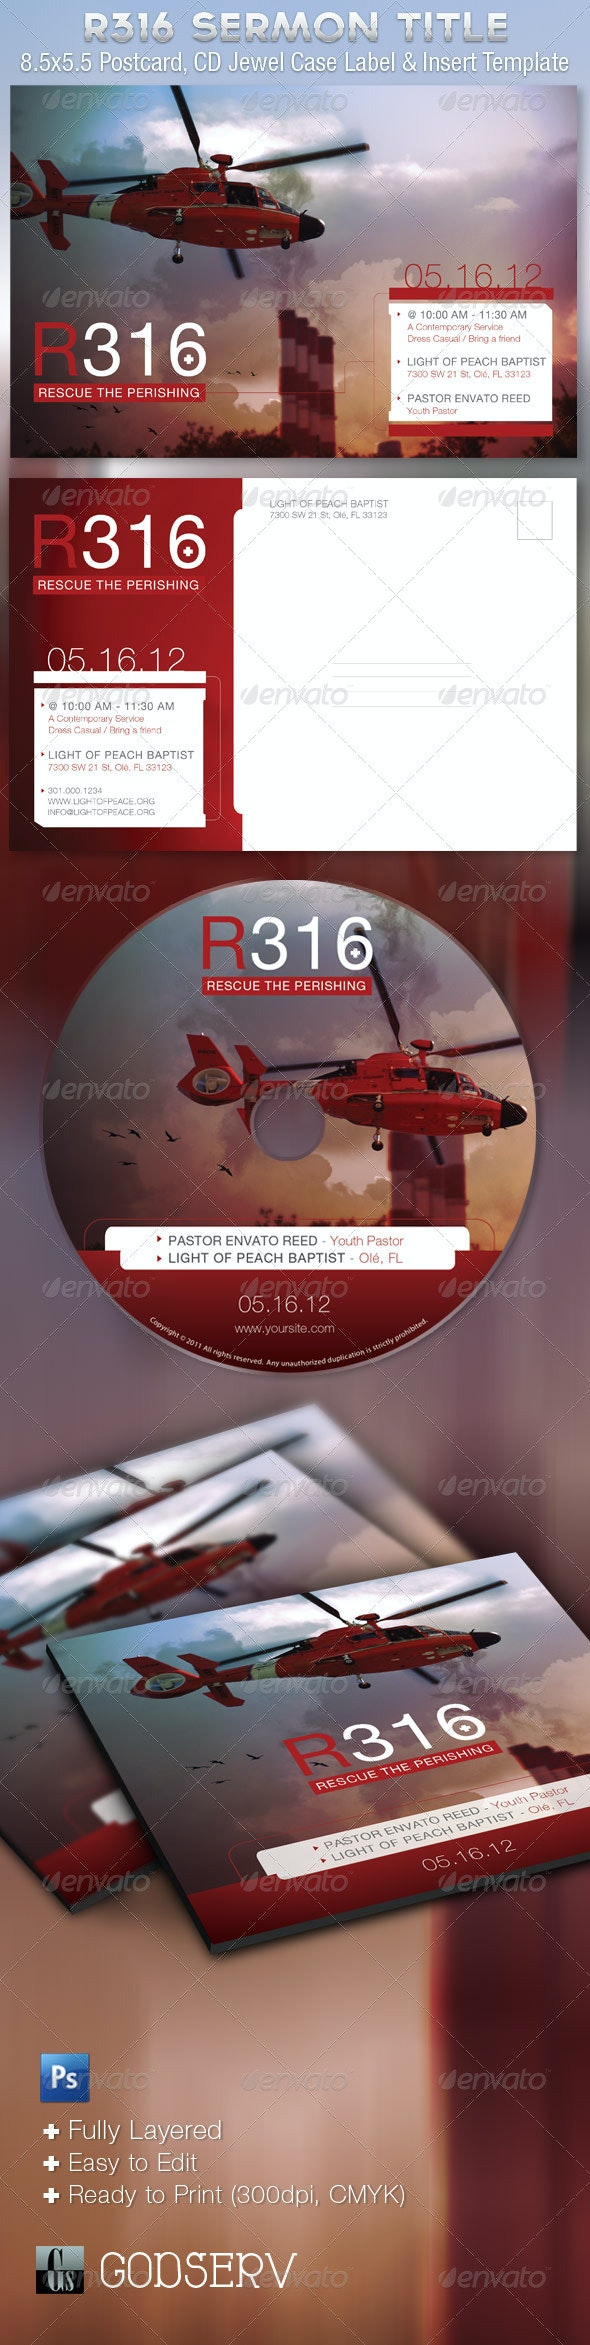 Rescue Flyer CD Photoshop Template - Church Flyers